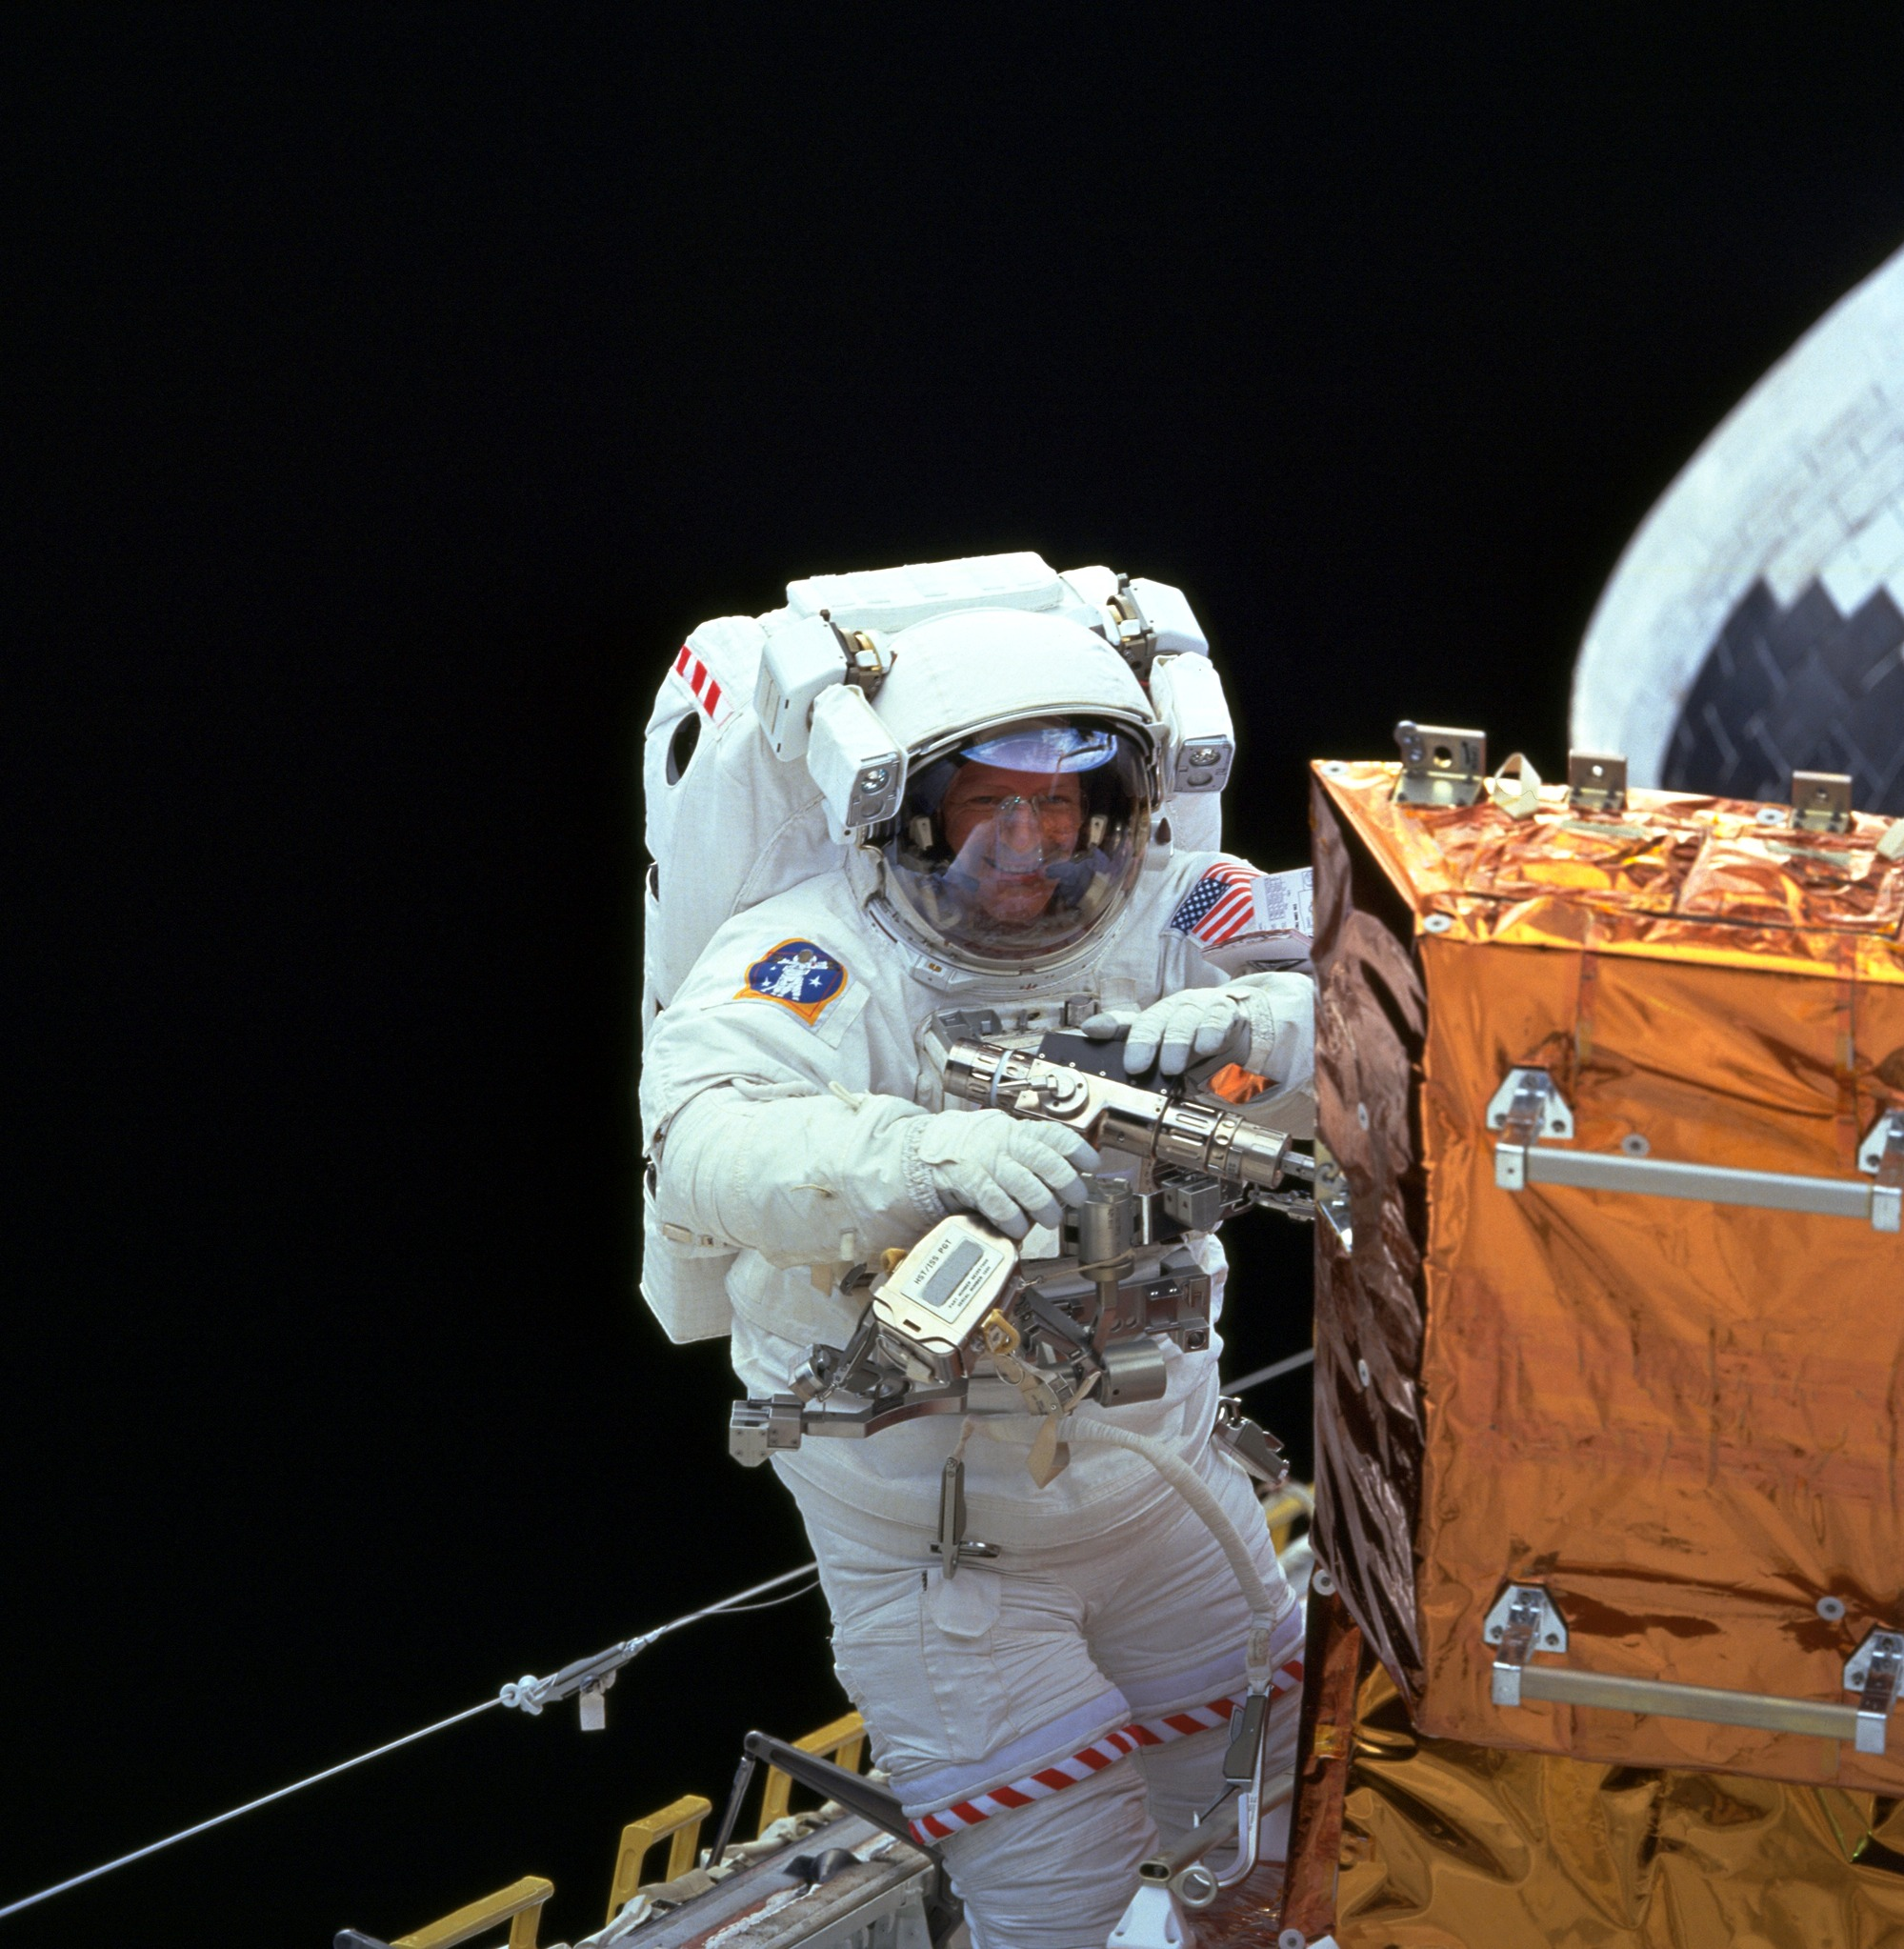 astronaut and spaceship - photo #23